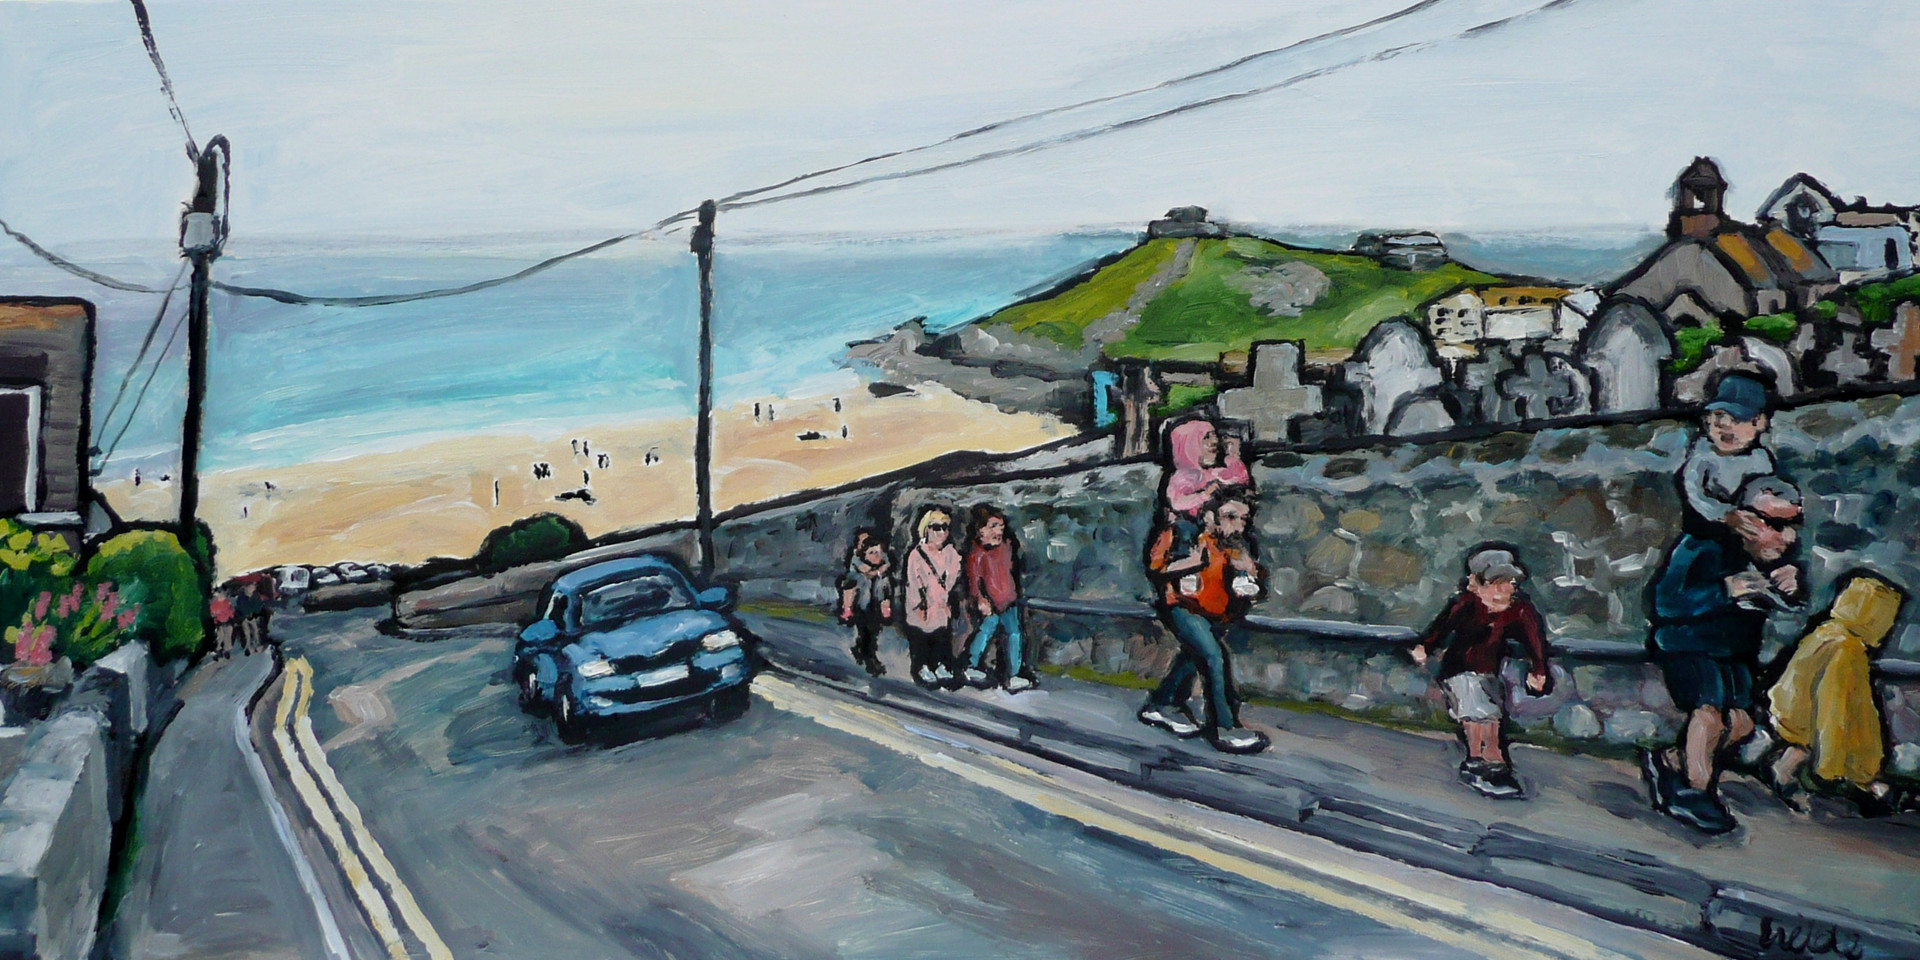 Back from the beach - 10 x 20 inch